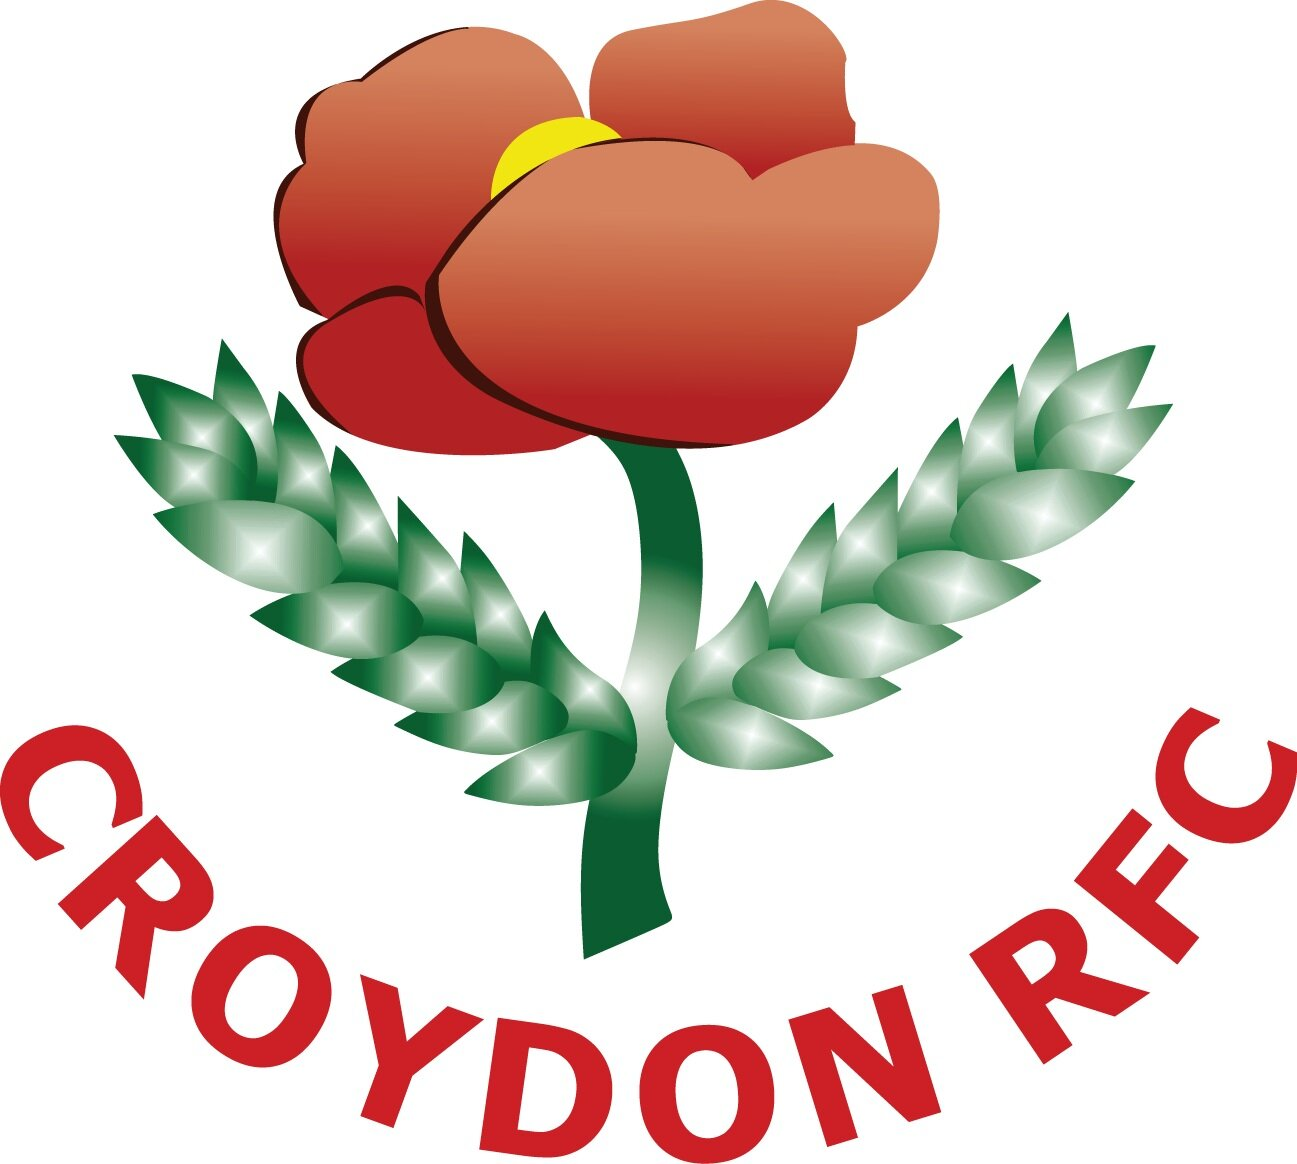 Croydon Rugby Football Club